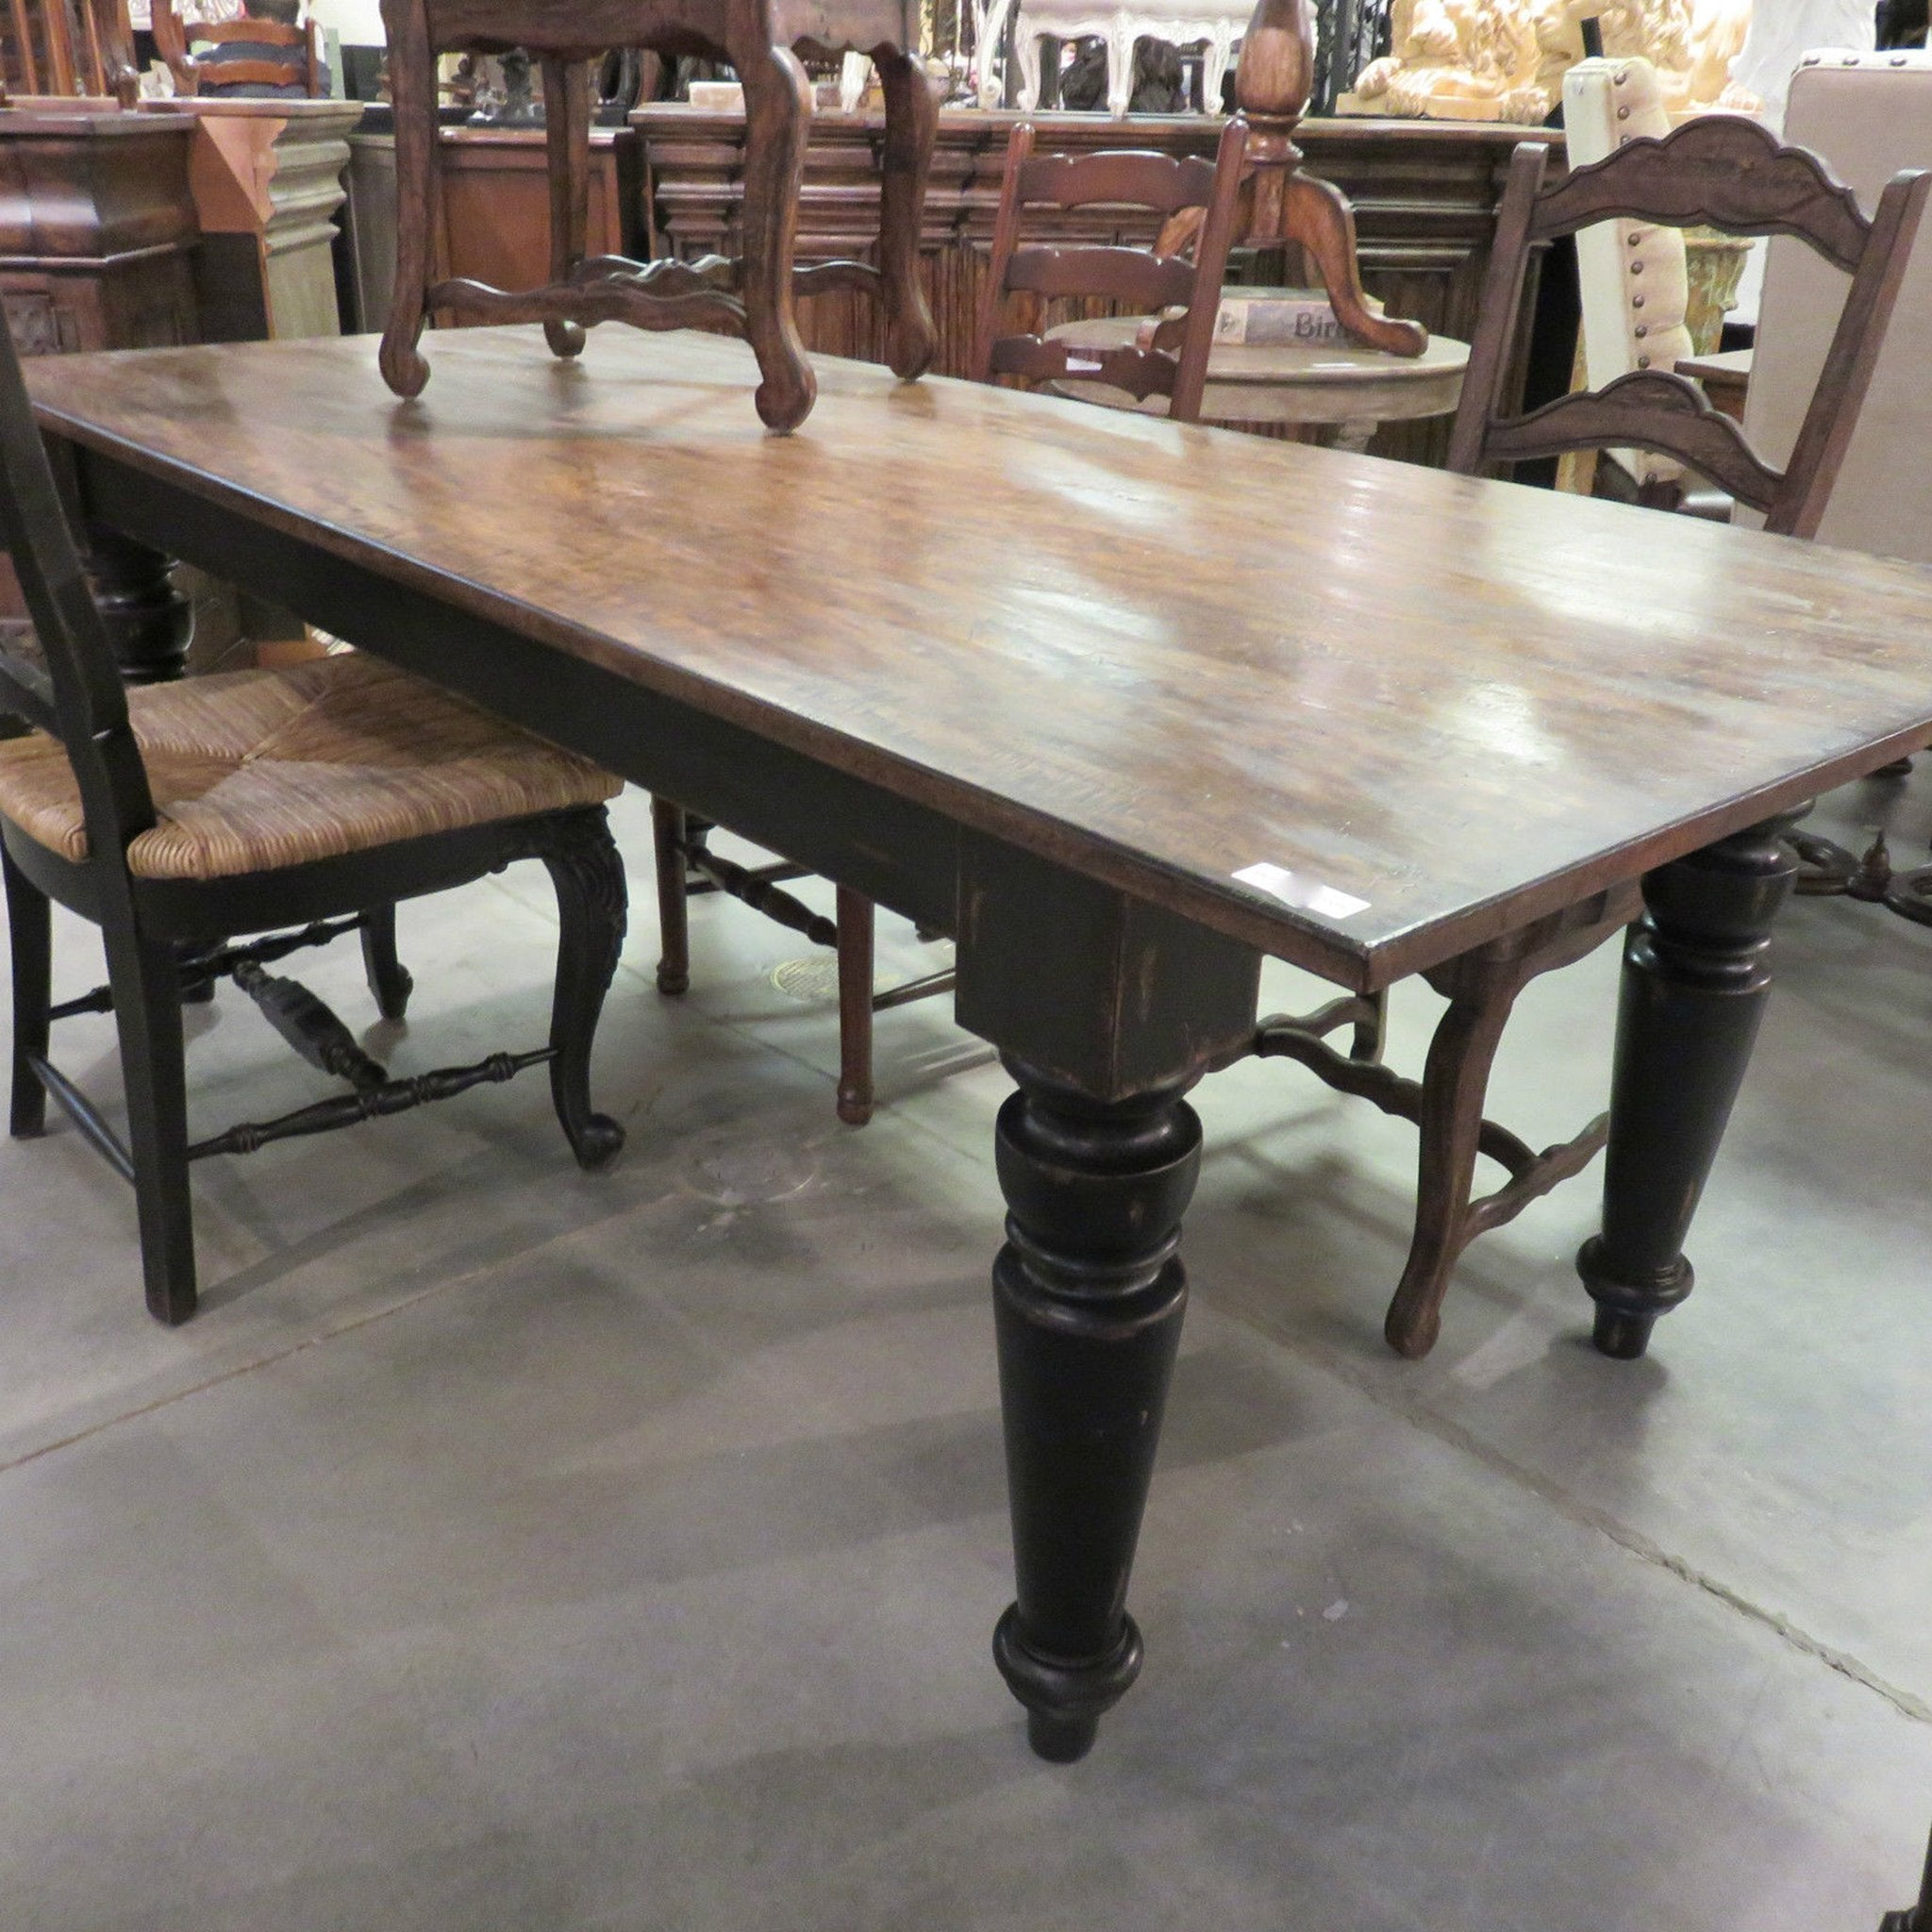 "Wood And Black Dining Table: Rustic Farmhouse Dining Table 72"" Black Distressed"